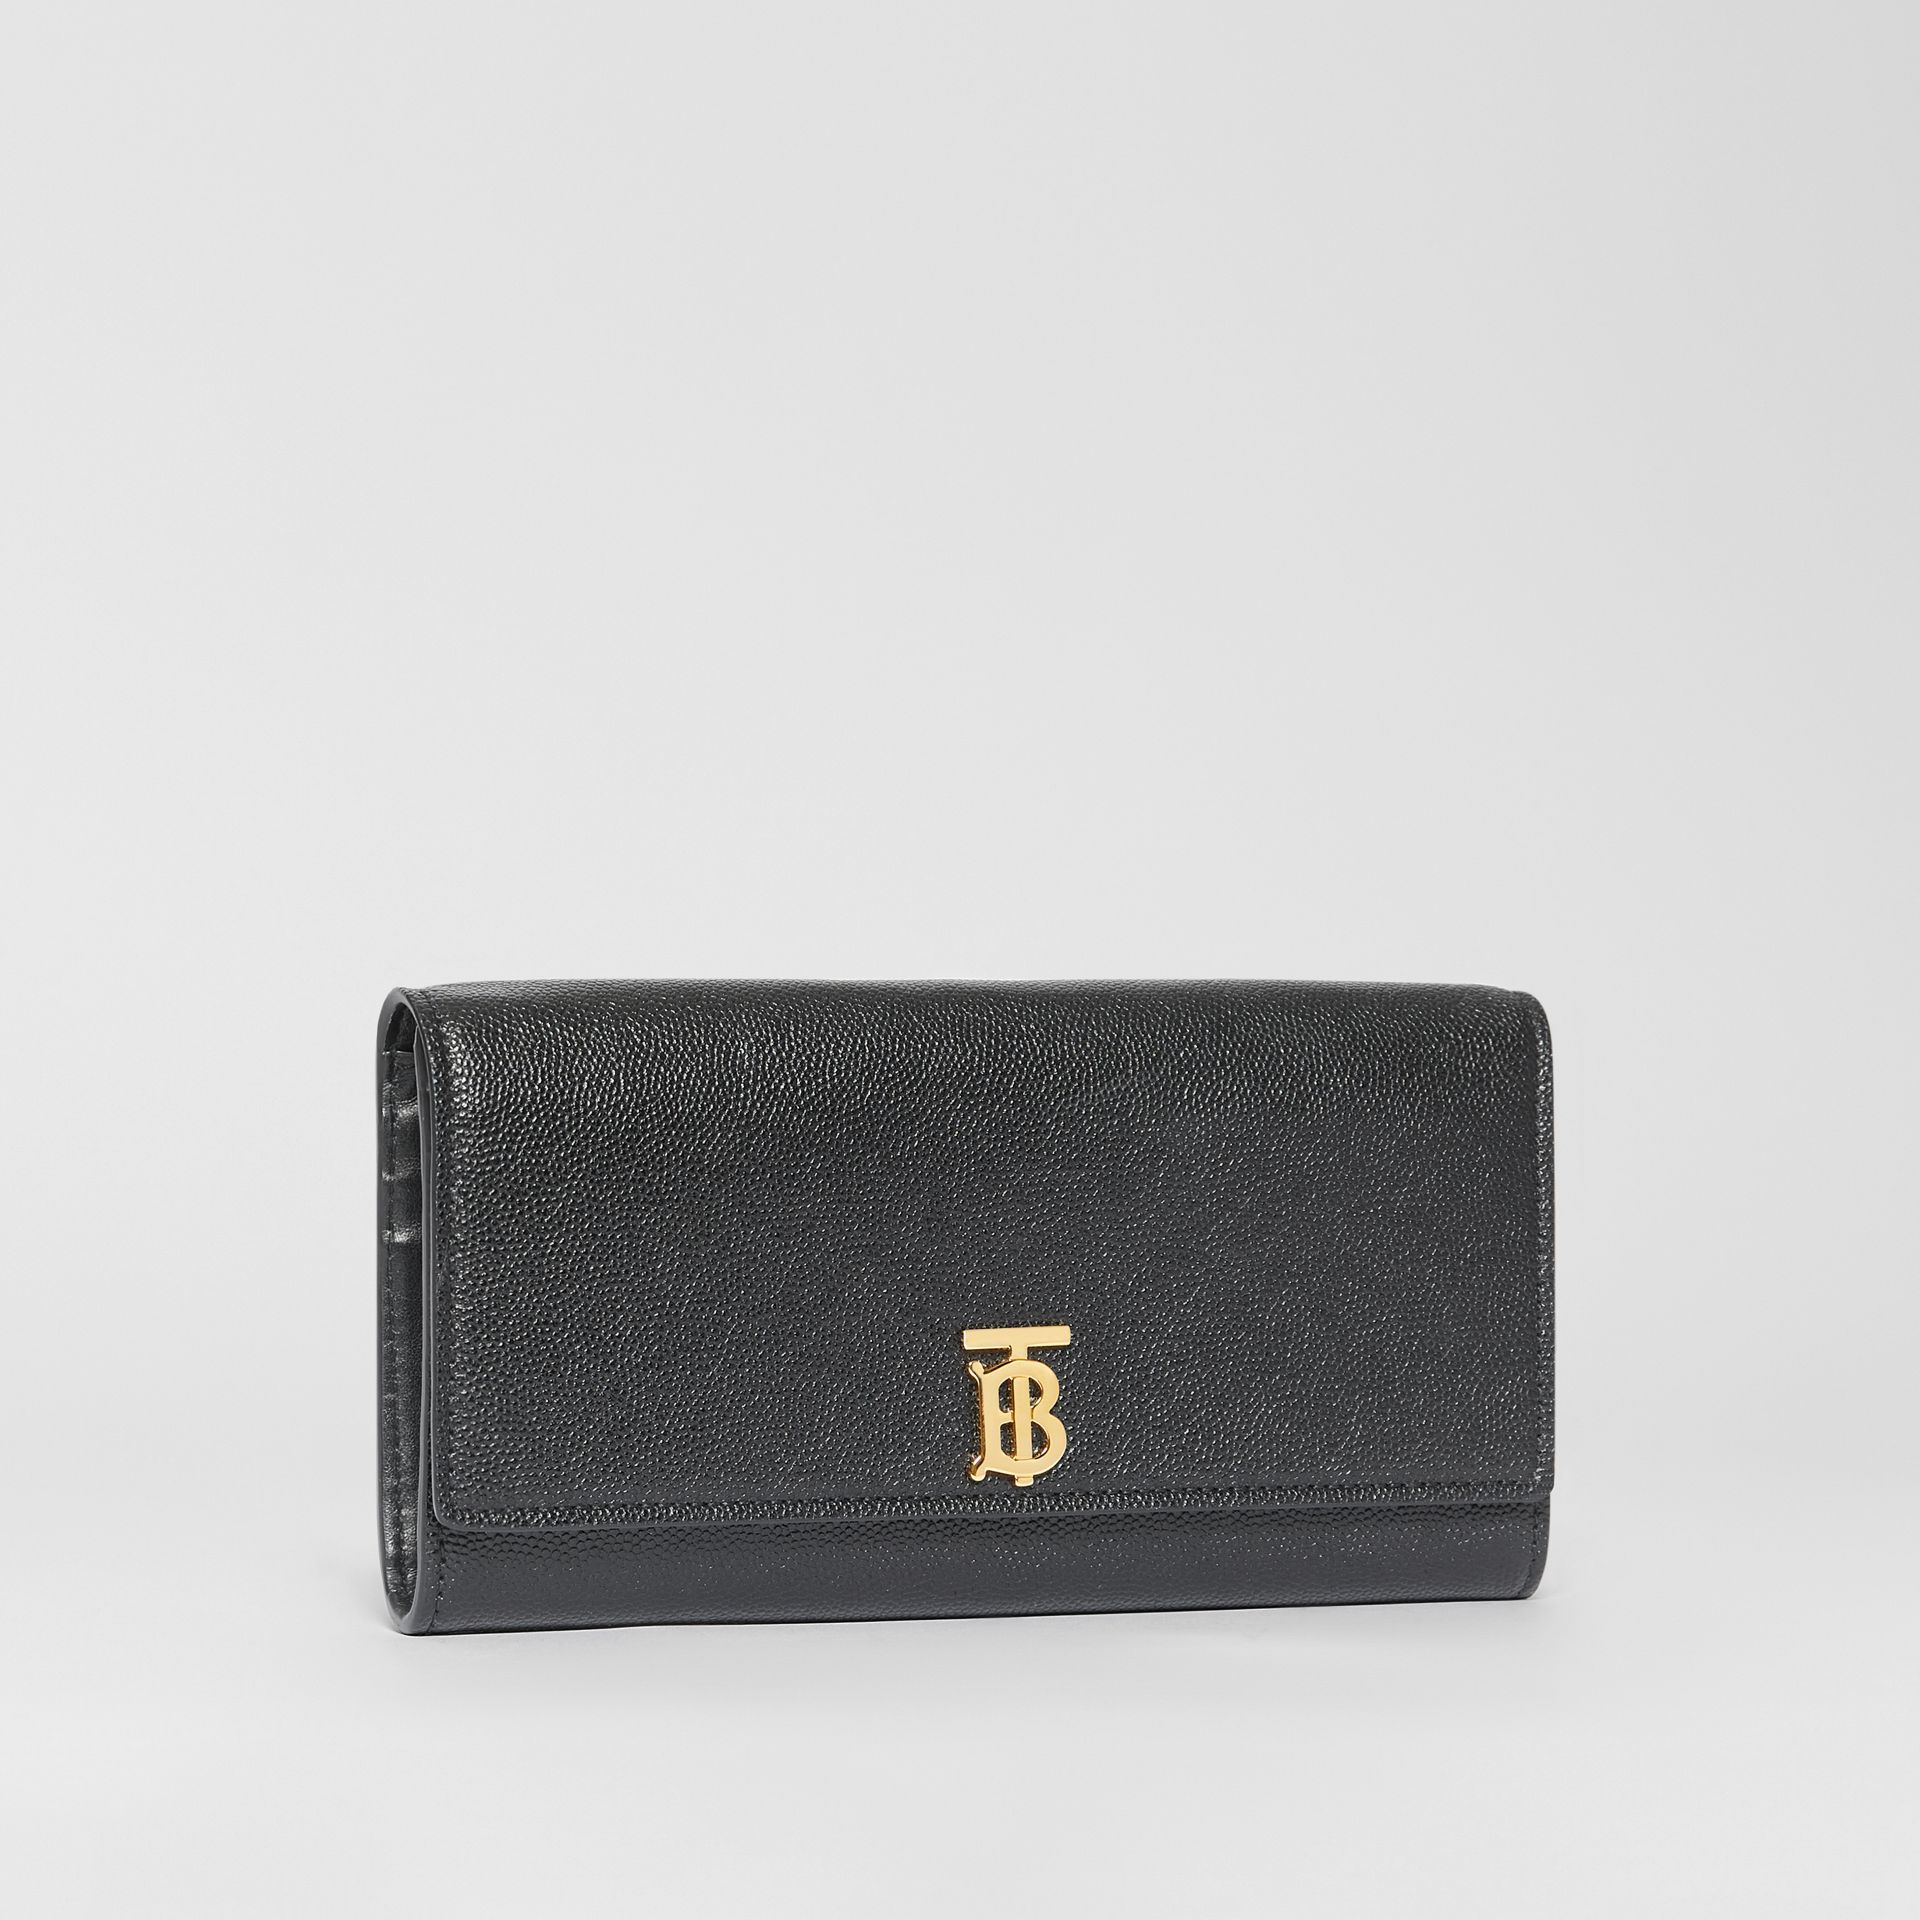 Monogram Motif Grainy Leather Continental Wallet in Black - Women | Burberry - gallery image 4